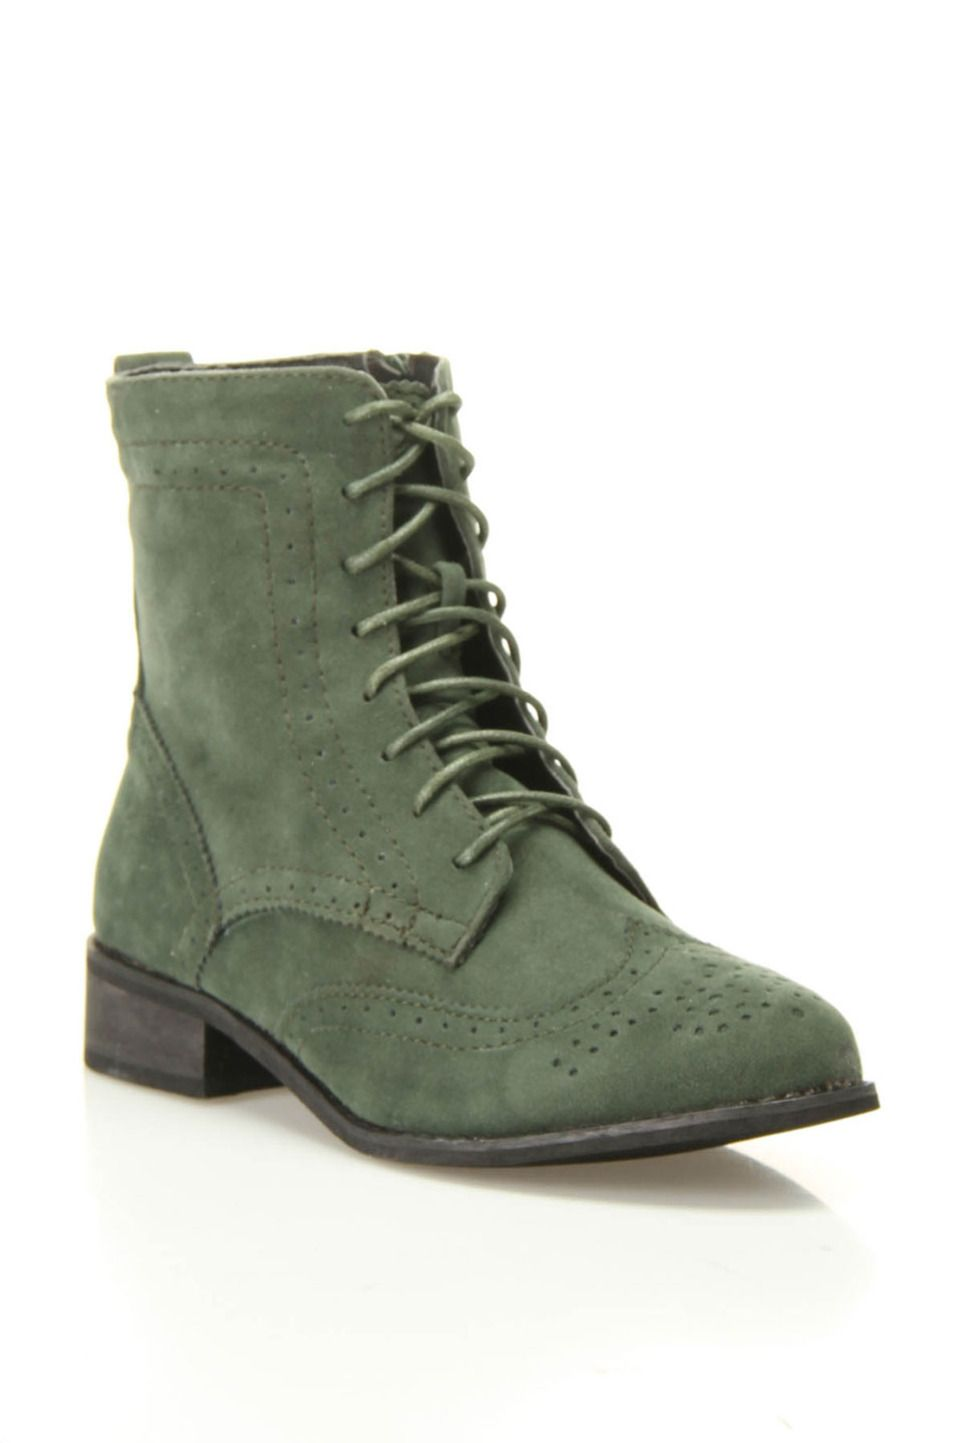 Green suede boot